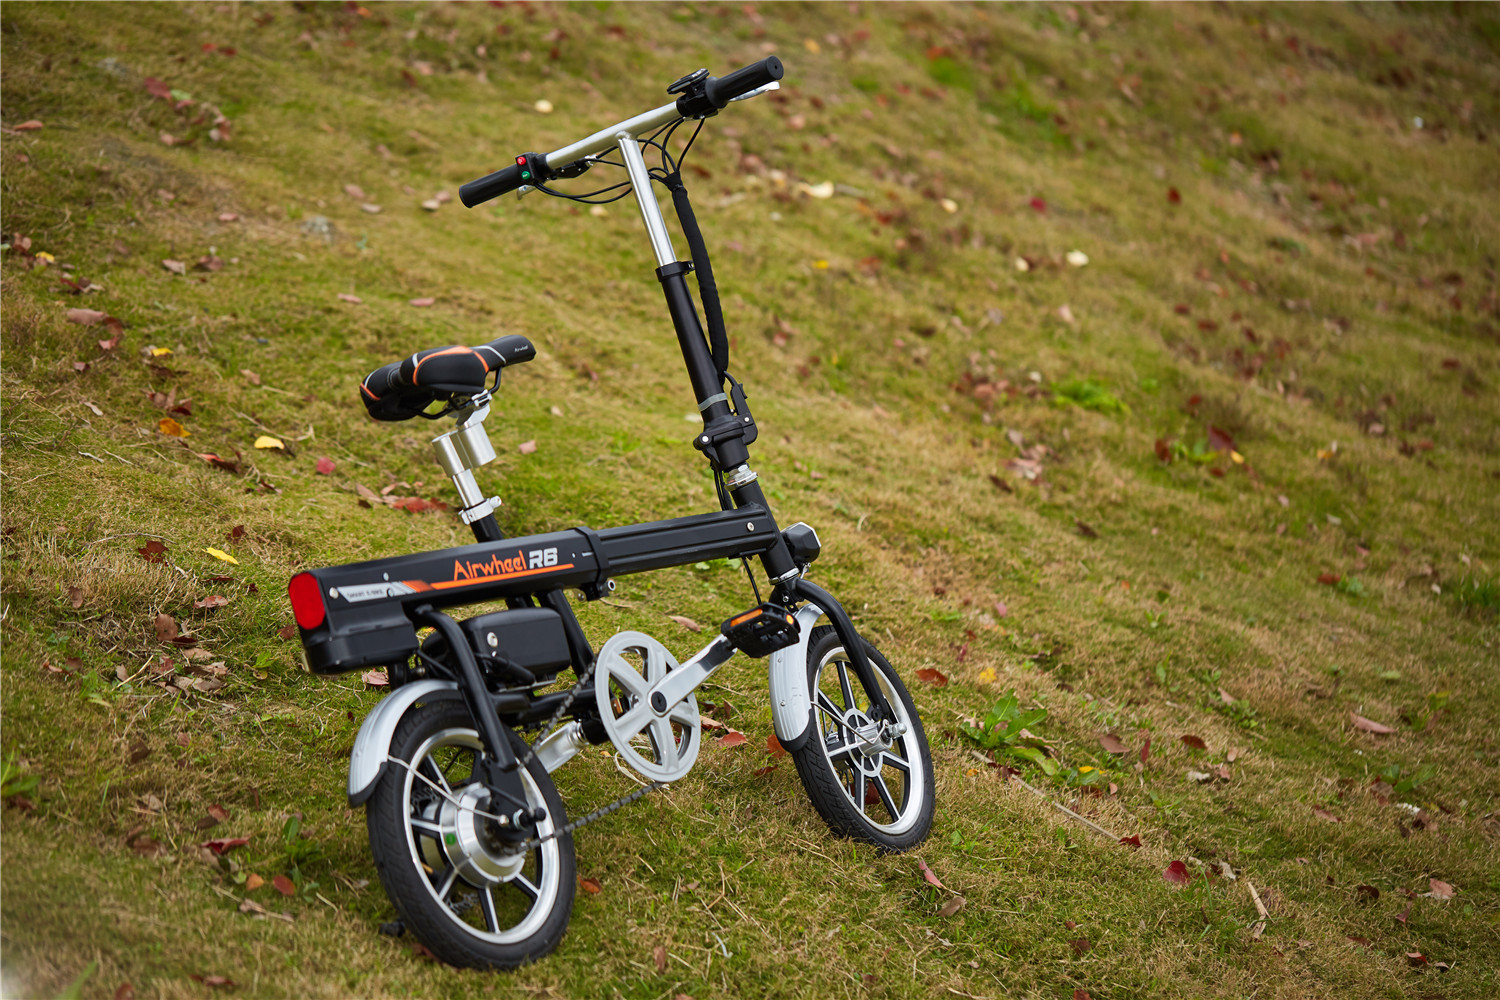 Airwheel R6 assist bike